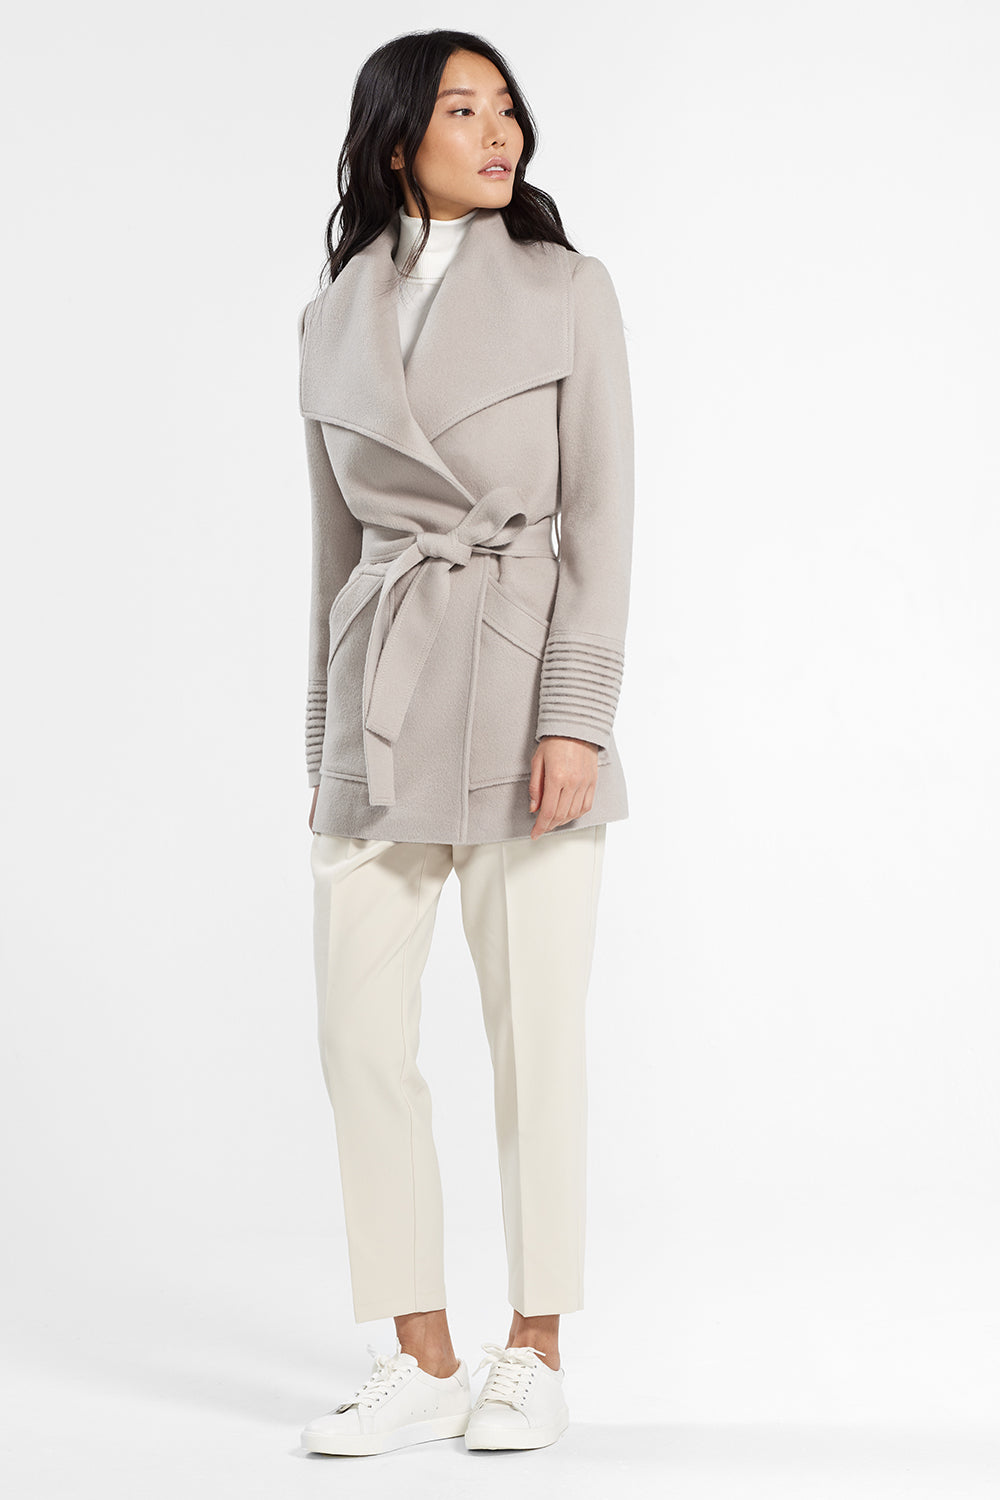 Sentaler Cropped Wide Collar Wrap Coat featured in Baby Alpaca and available in Bleeker Beige. Seen from side.